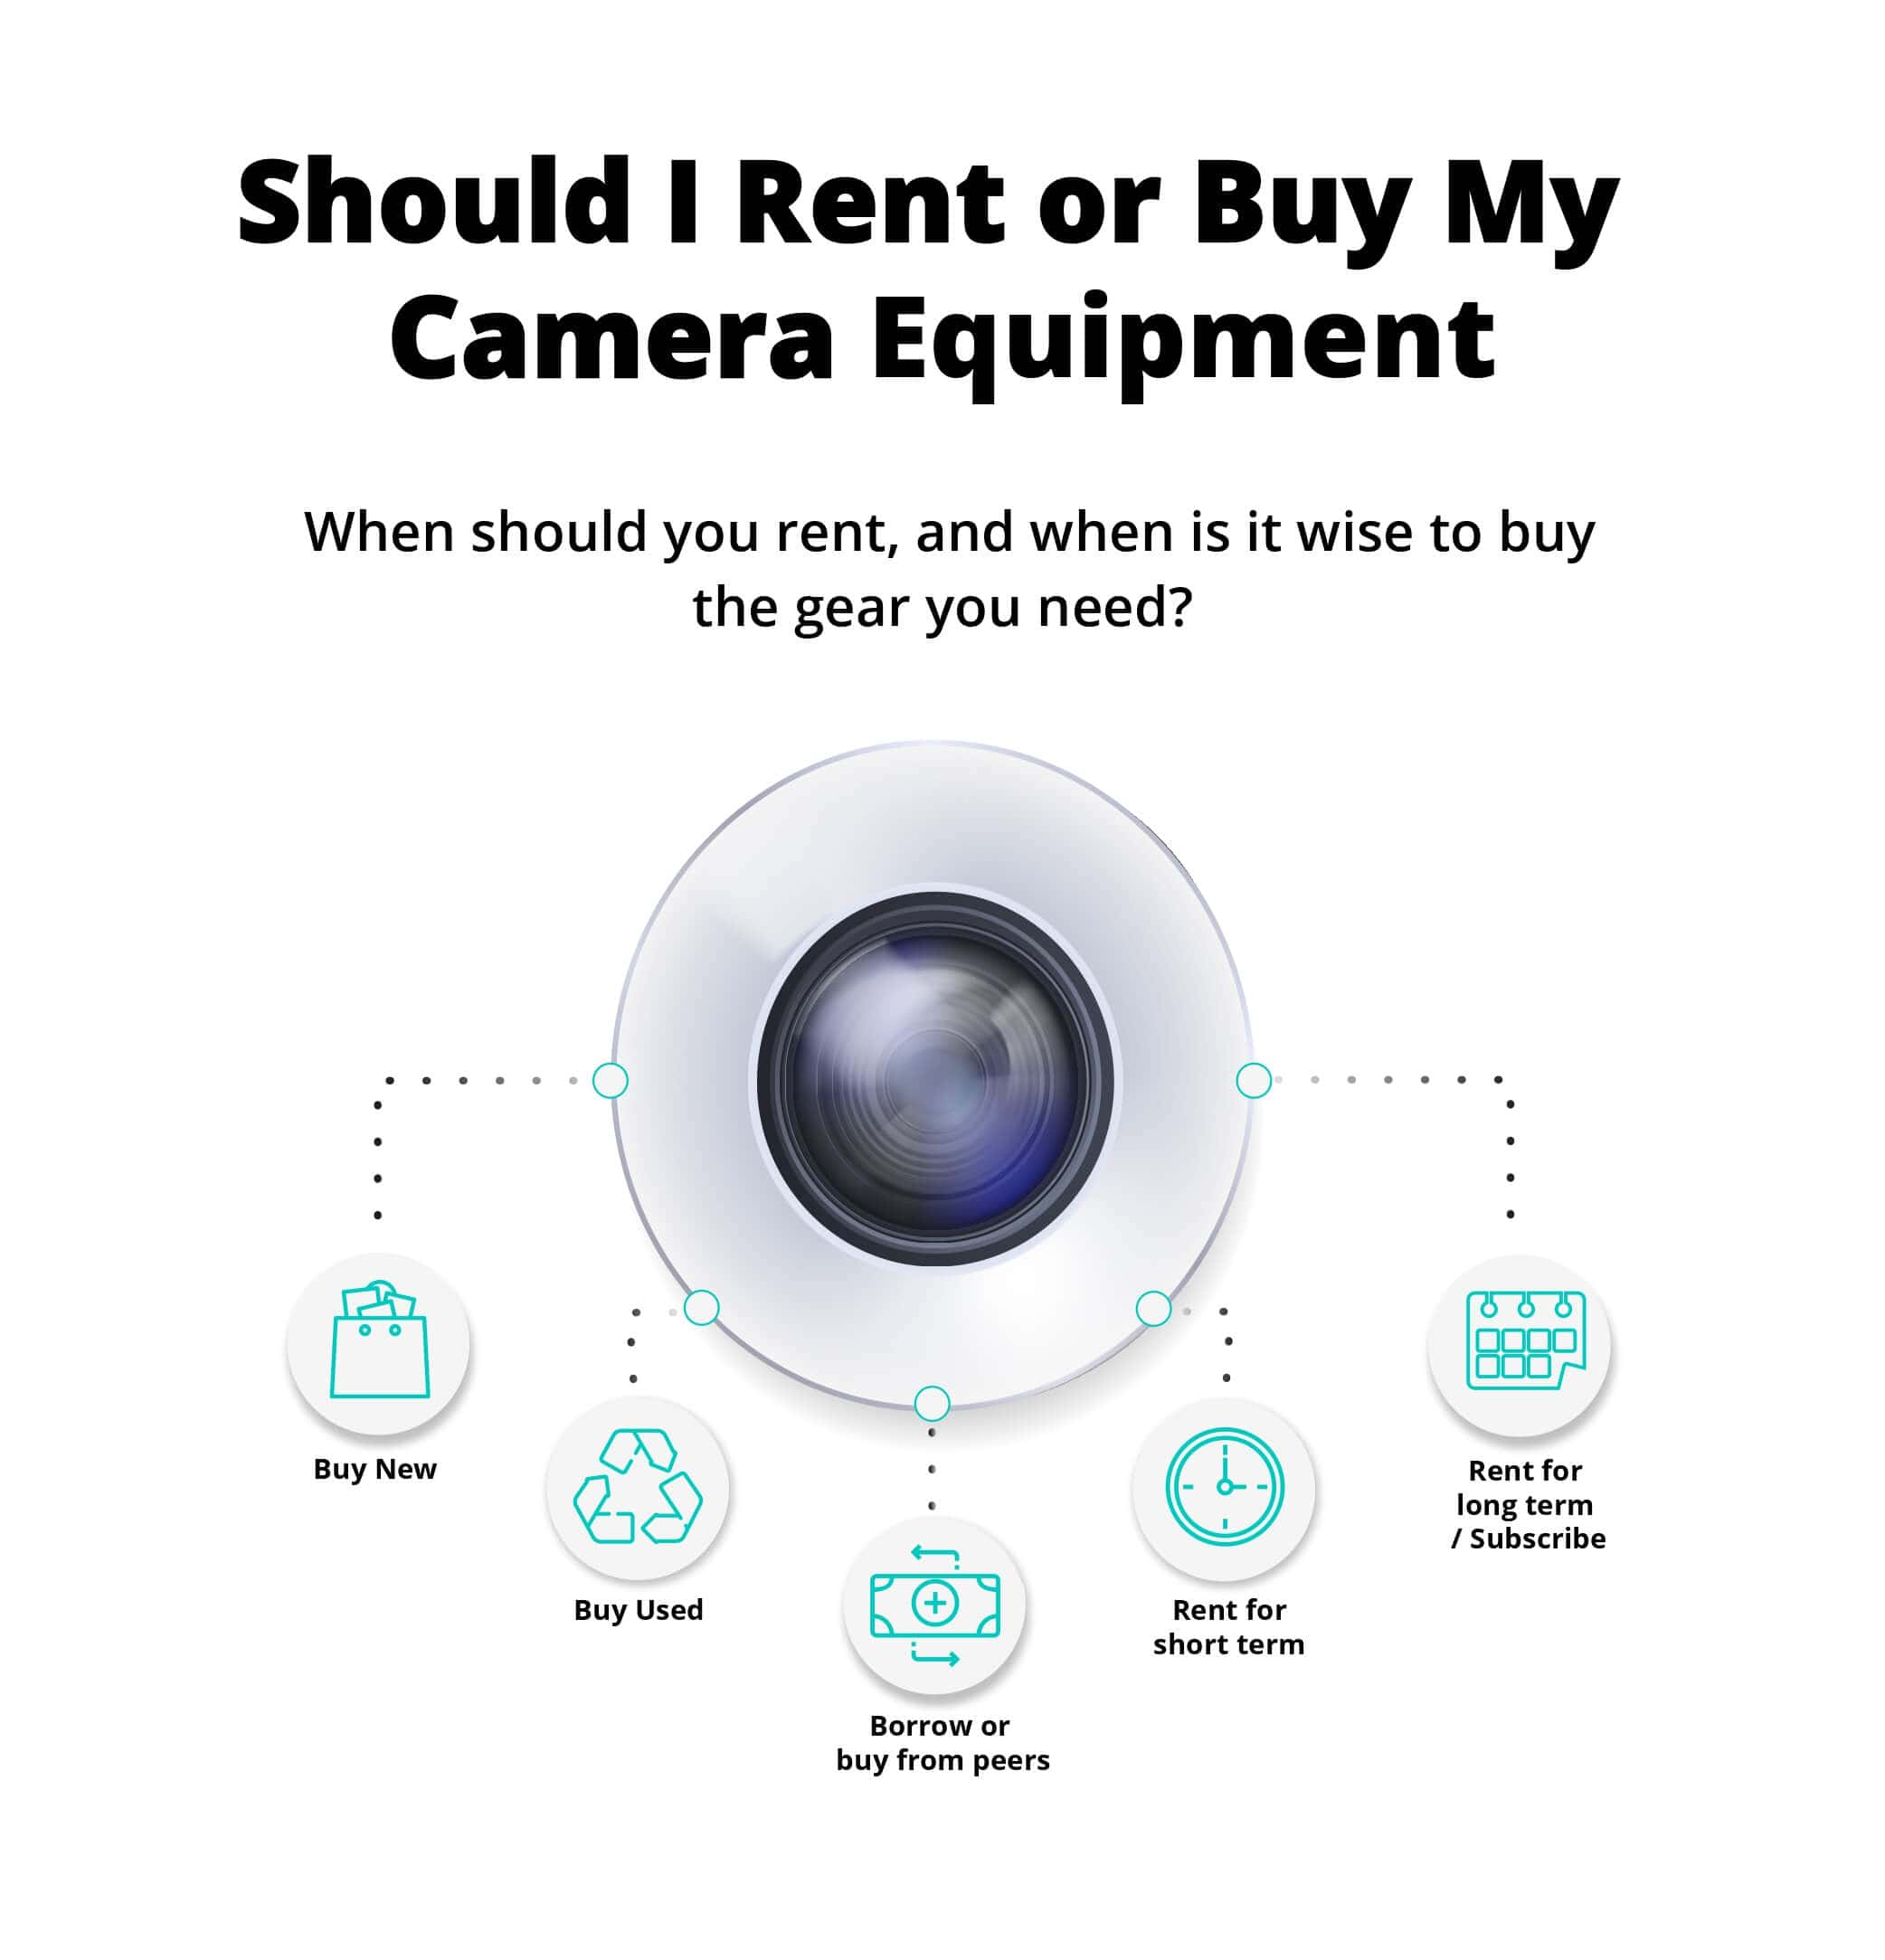 When to buy, rent or subscribe to my video and camera equipment?